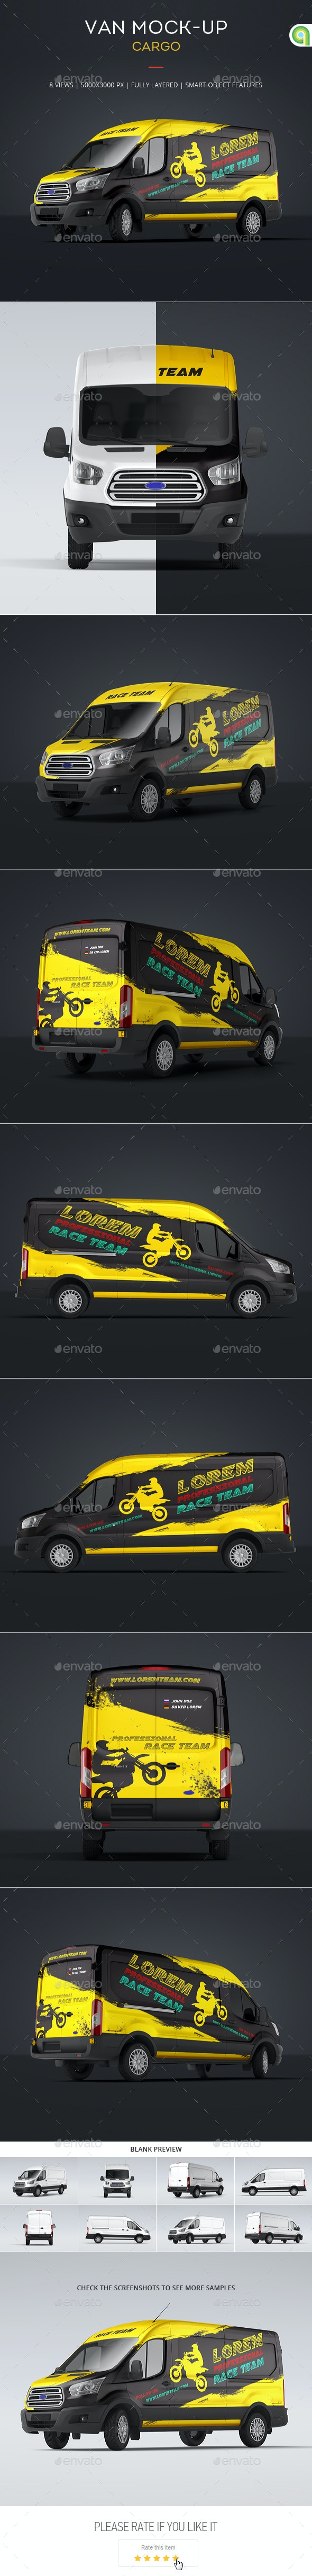 Cargo Van Mock-Up - Vehicle Wraps Print